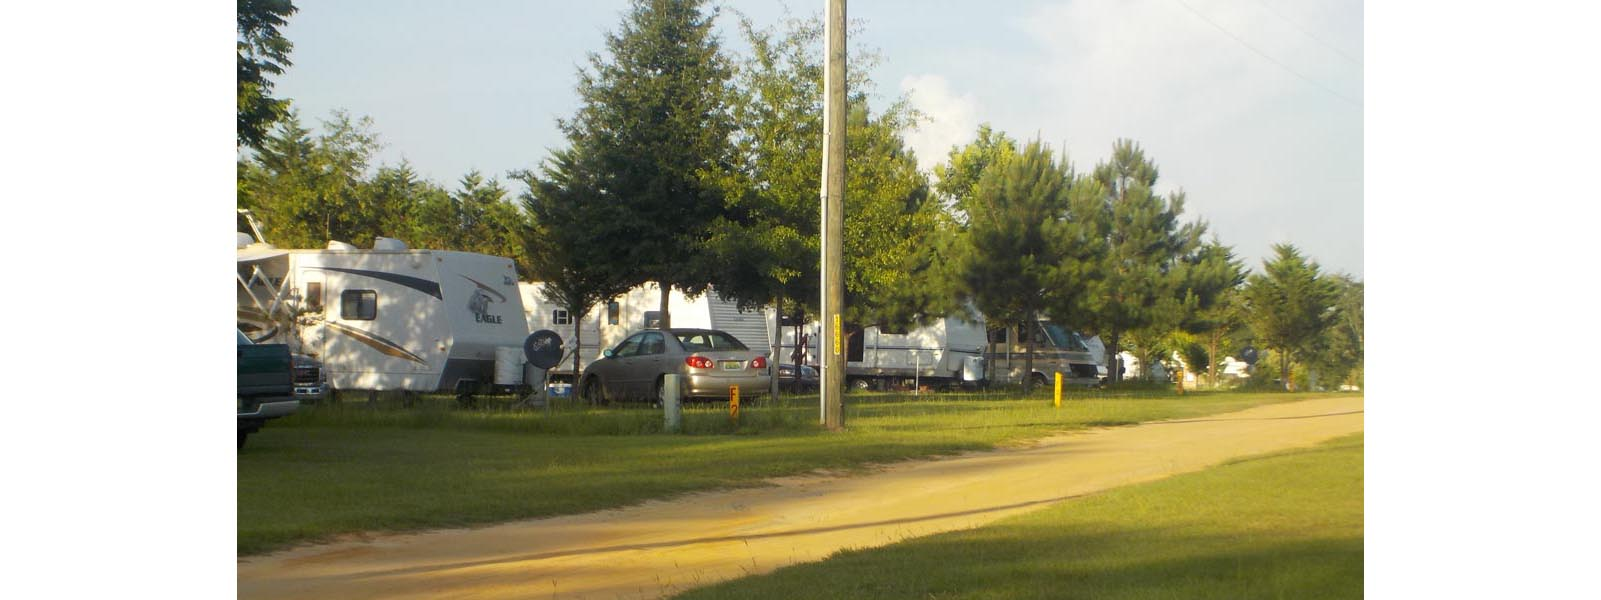 Picture showing multiple RV sites at the campground